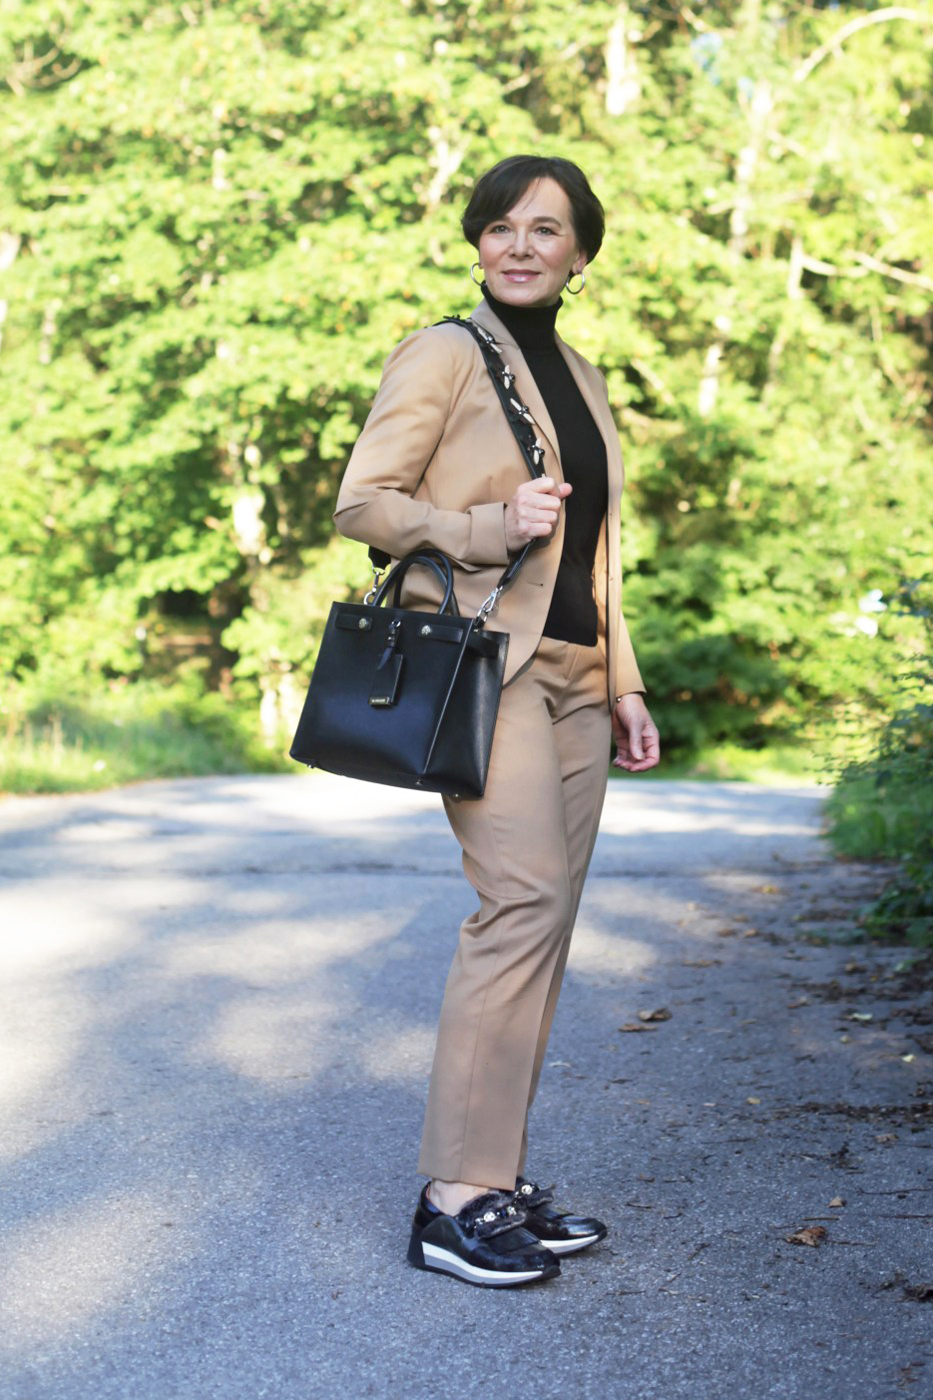 LadyofStyle Hosenanzug Businesslook Powersuit Bürolook Hallhuber Madeleine 50plus Blogger